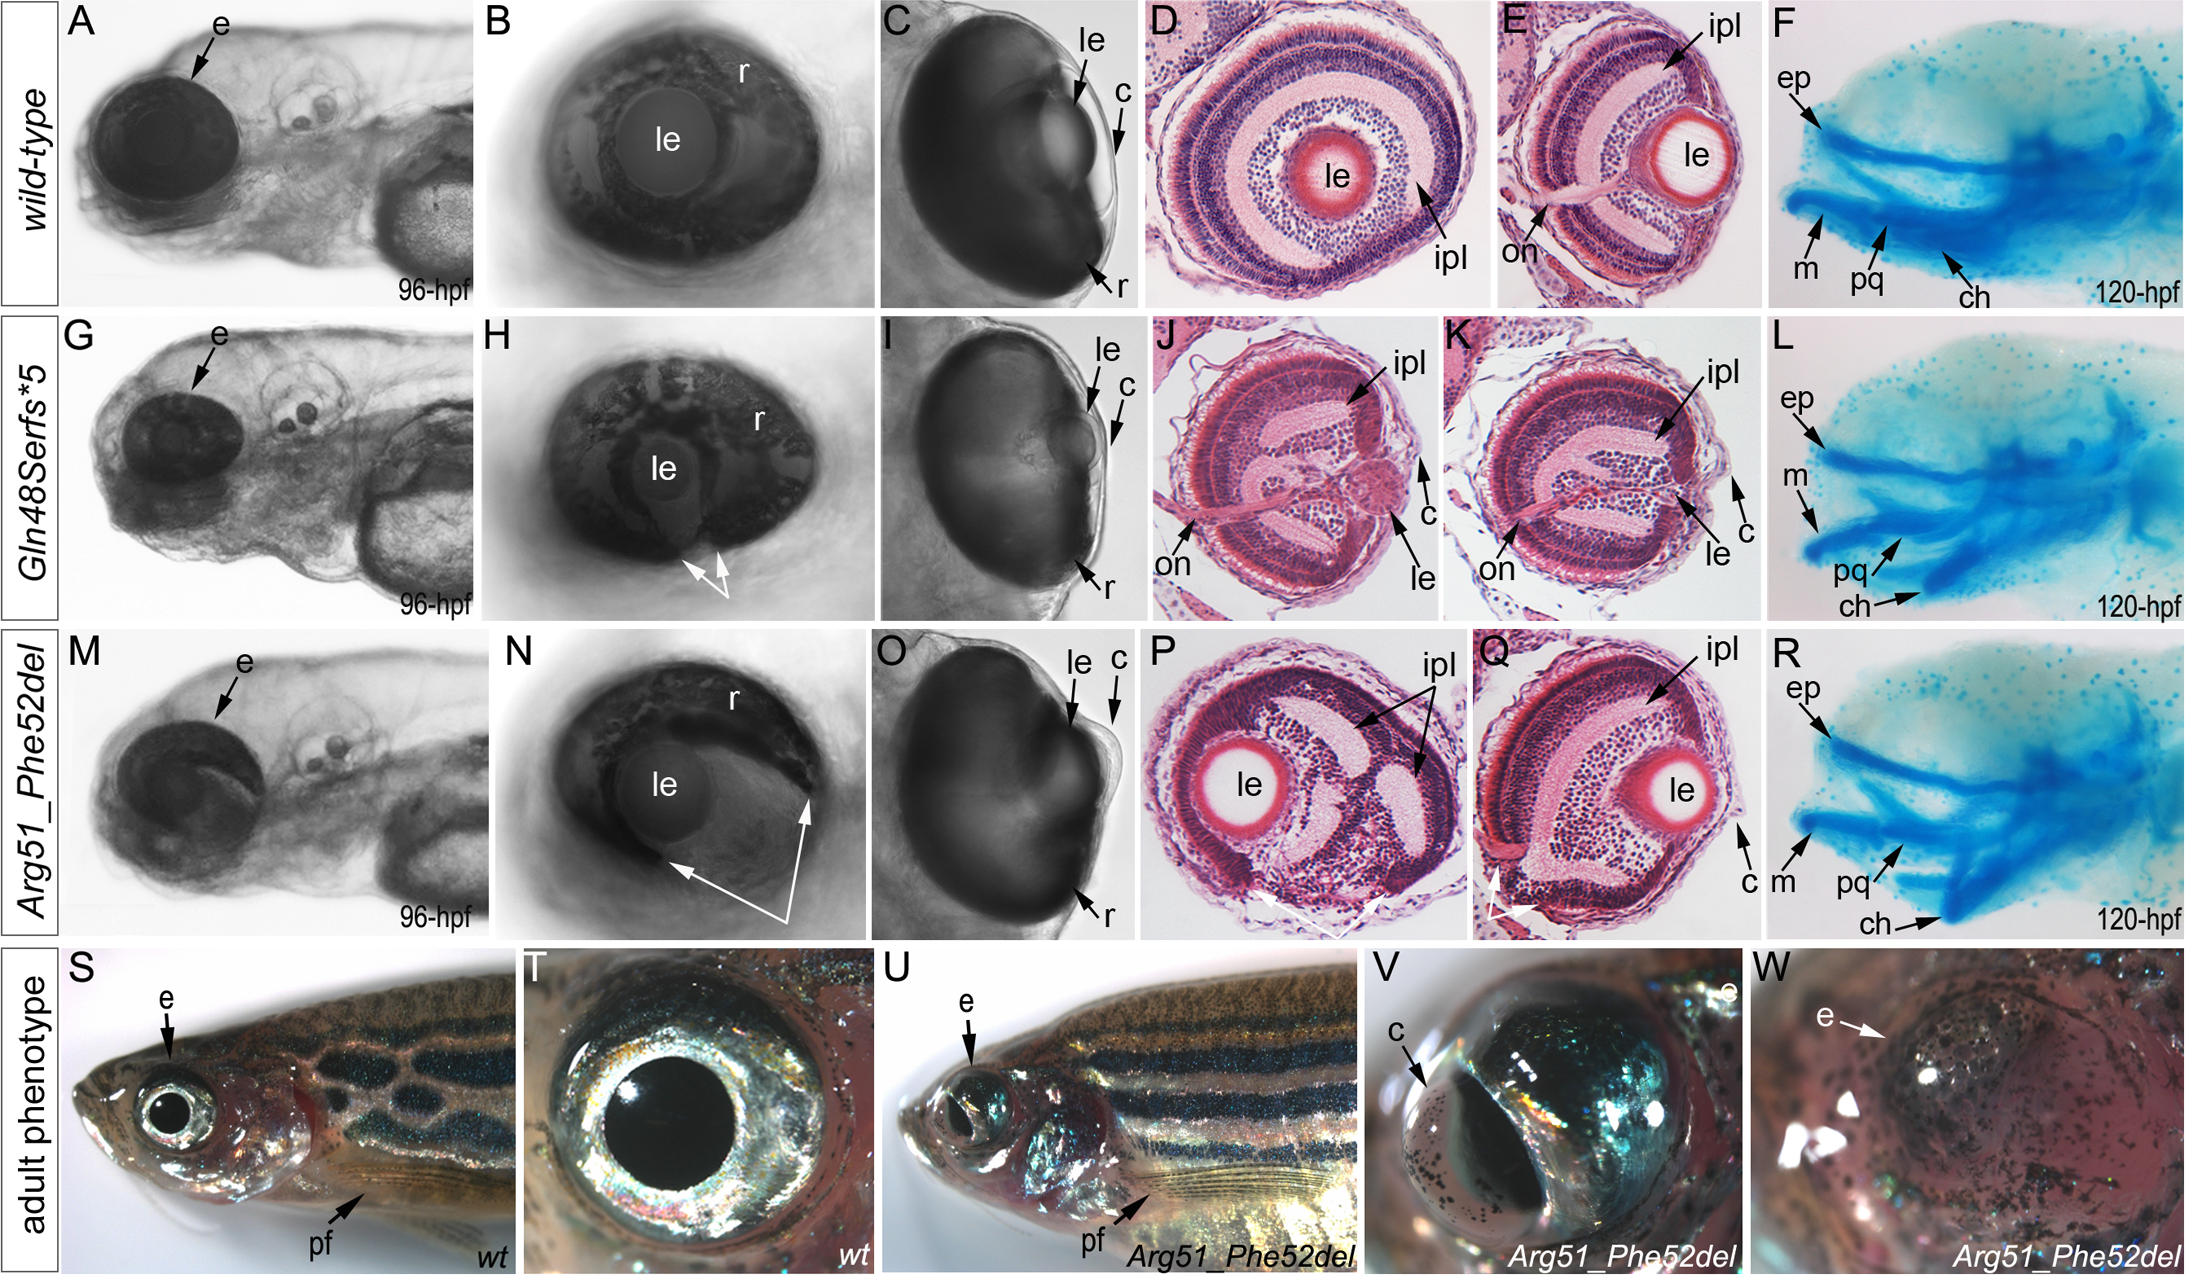 Phenotypic analysis of homozygous embryos carrying mutant <i>mab21l2</i> alleles encoding p.(Gln48Serfs*5) truncation (<i>mab21l2</i><sup>Q48Sfs*5</sup>) and p.(Arg51_Phe52del) in-frame deletion (<i>mab21l2</i><sup><i>R51_F52del</i></sup>) proteins.